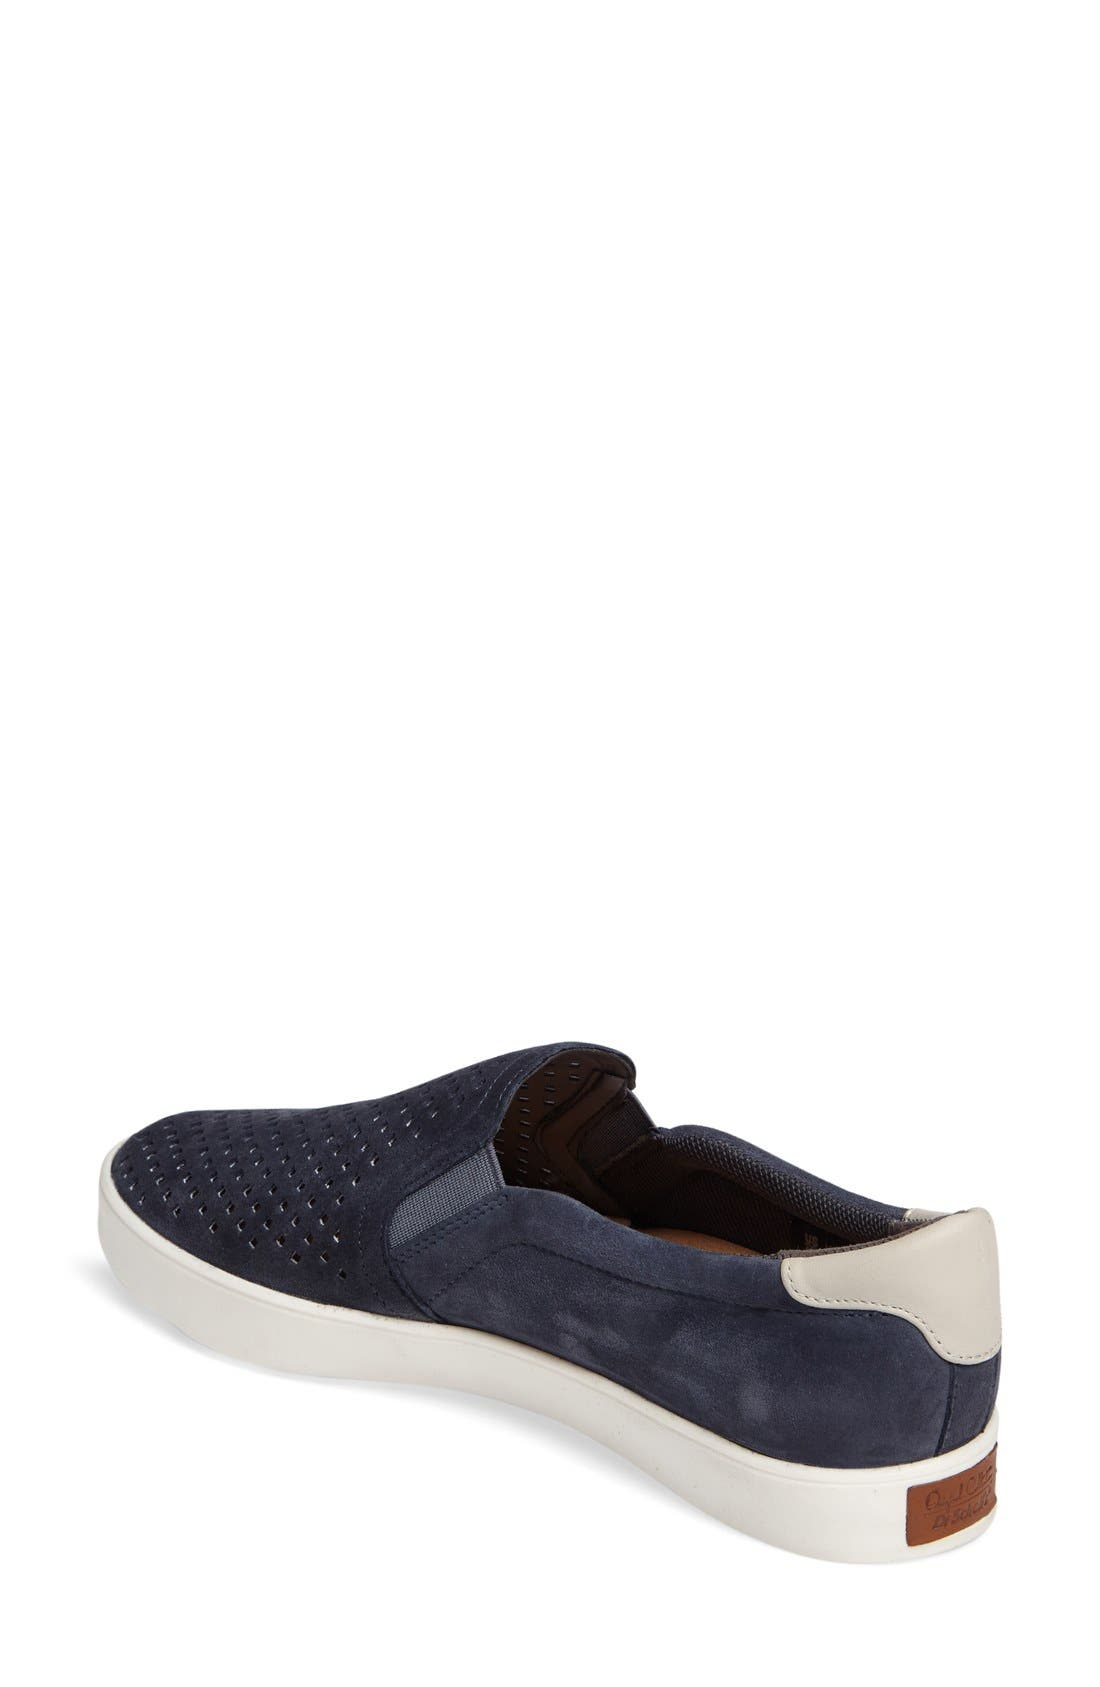 Original Collection 'Scout' Slip On Sneaker,                             Alternate thumbnail 154, color,